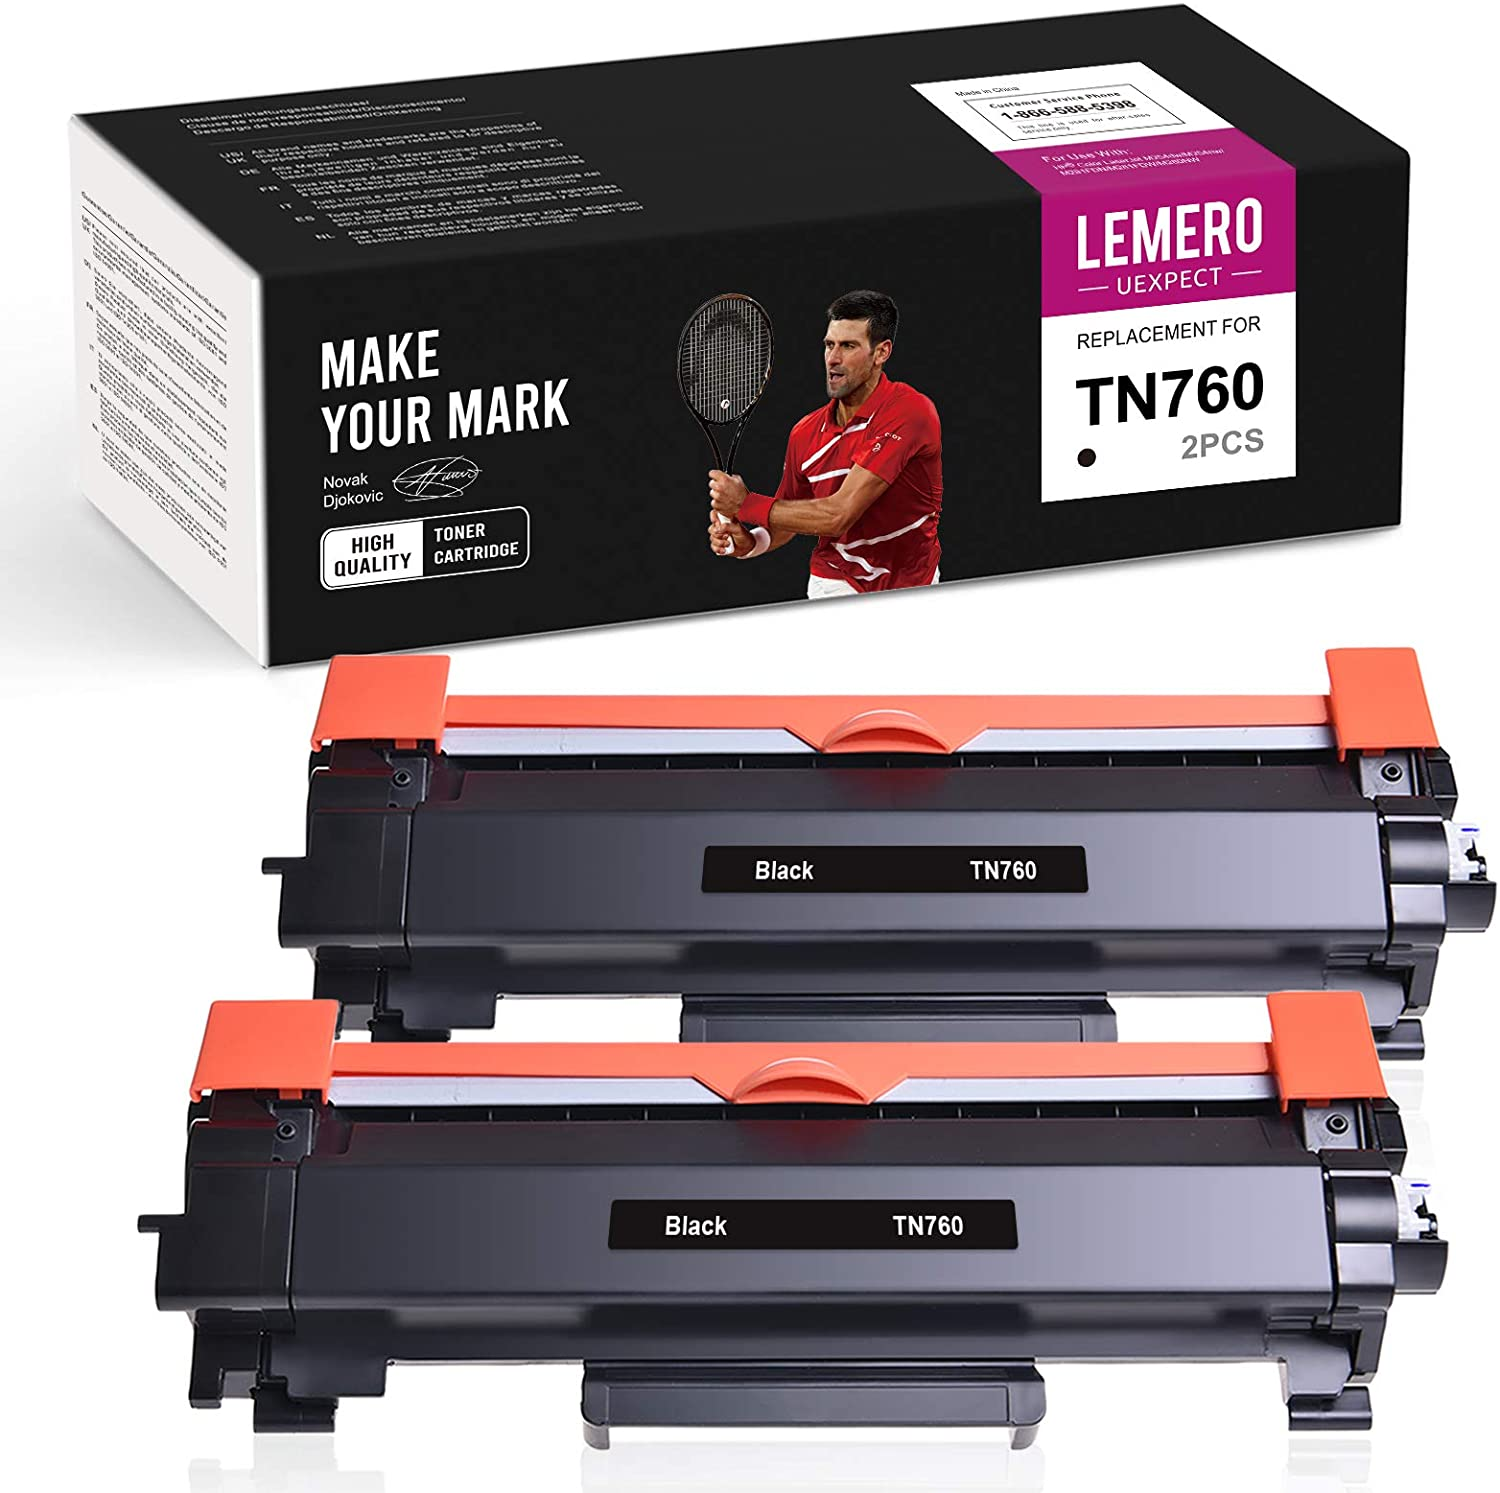 LemeroUexpect Compatible Toner Cartridge Replacement for Brother TN760 TN-760 TN730 to Use with HL-L2350DW HL-L2395DW HL-L2390DW HL-L2370DW MFC-L2750DW MFC-L2710DW DCP-L2550DW (Black,2 Pack)